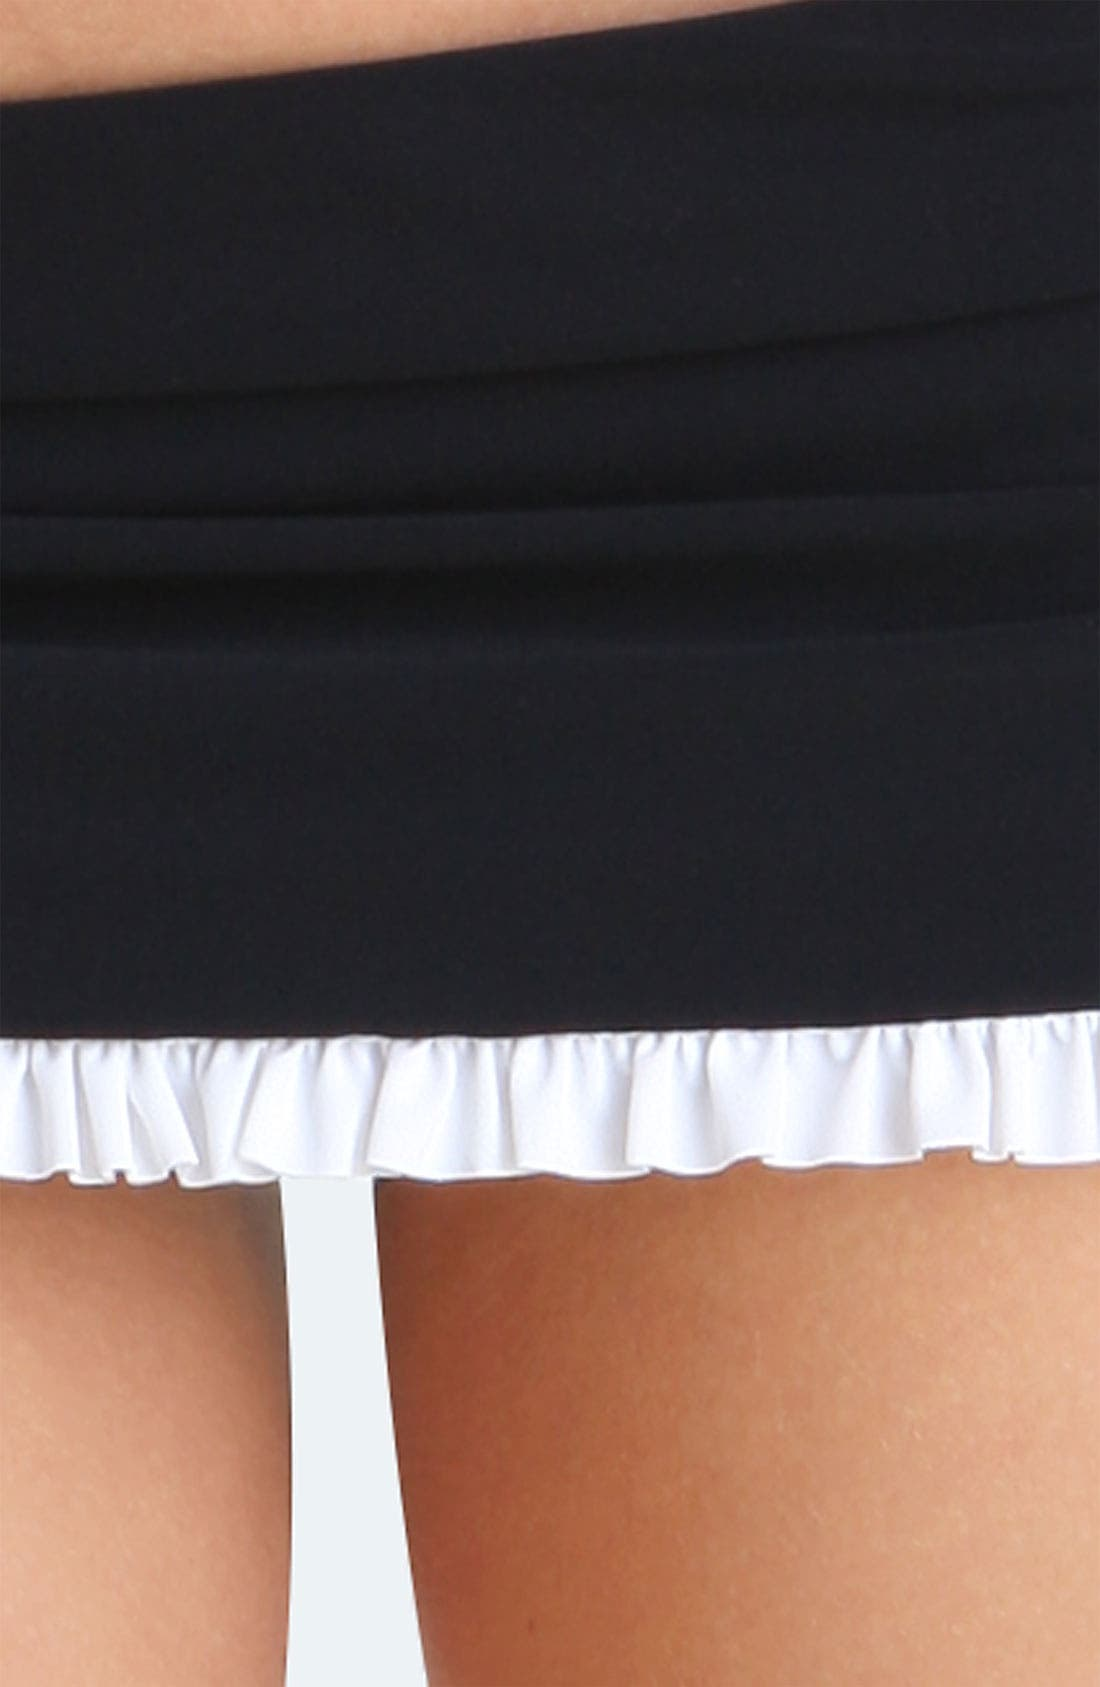 Alternate Image 3  - Profile by Gottex 'Black Tie' Skirted Bikini Bottoms